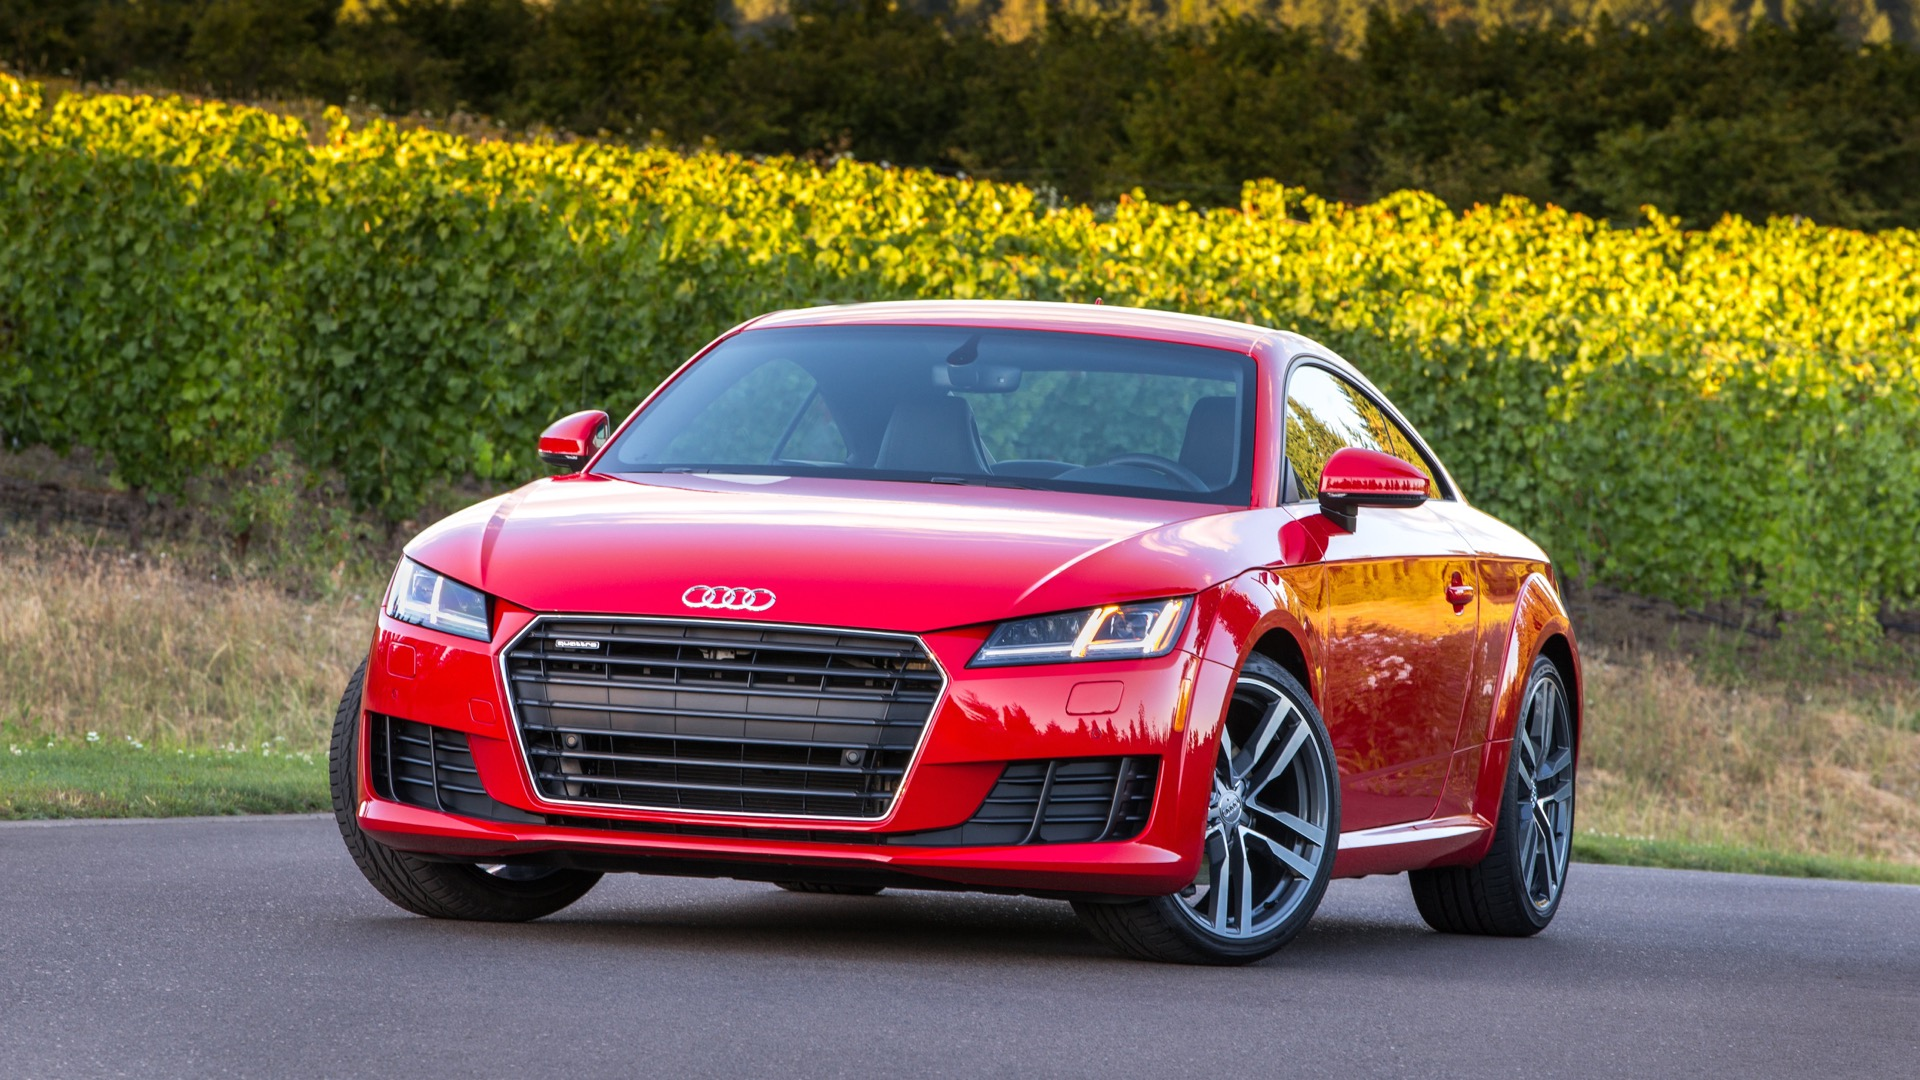 Jeep Dealership Jacksonville >> 2017 Audi TT Safety Review and Crash Test Ratings - The ...